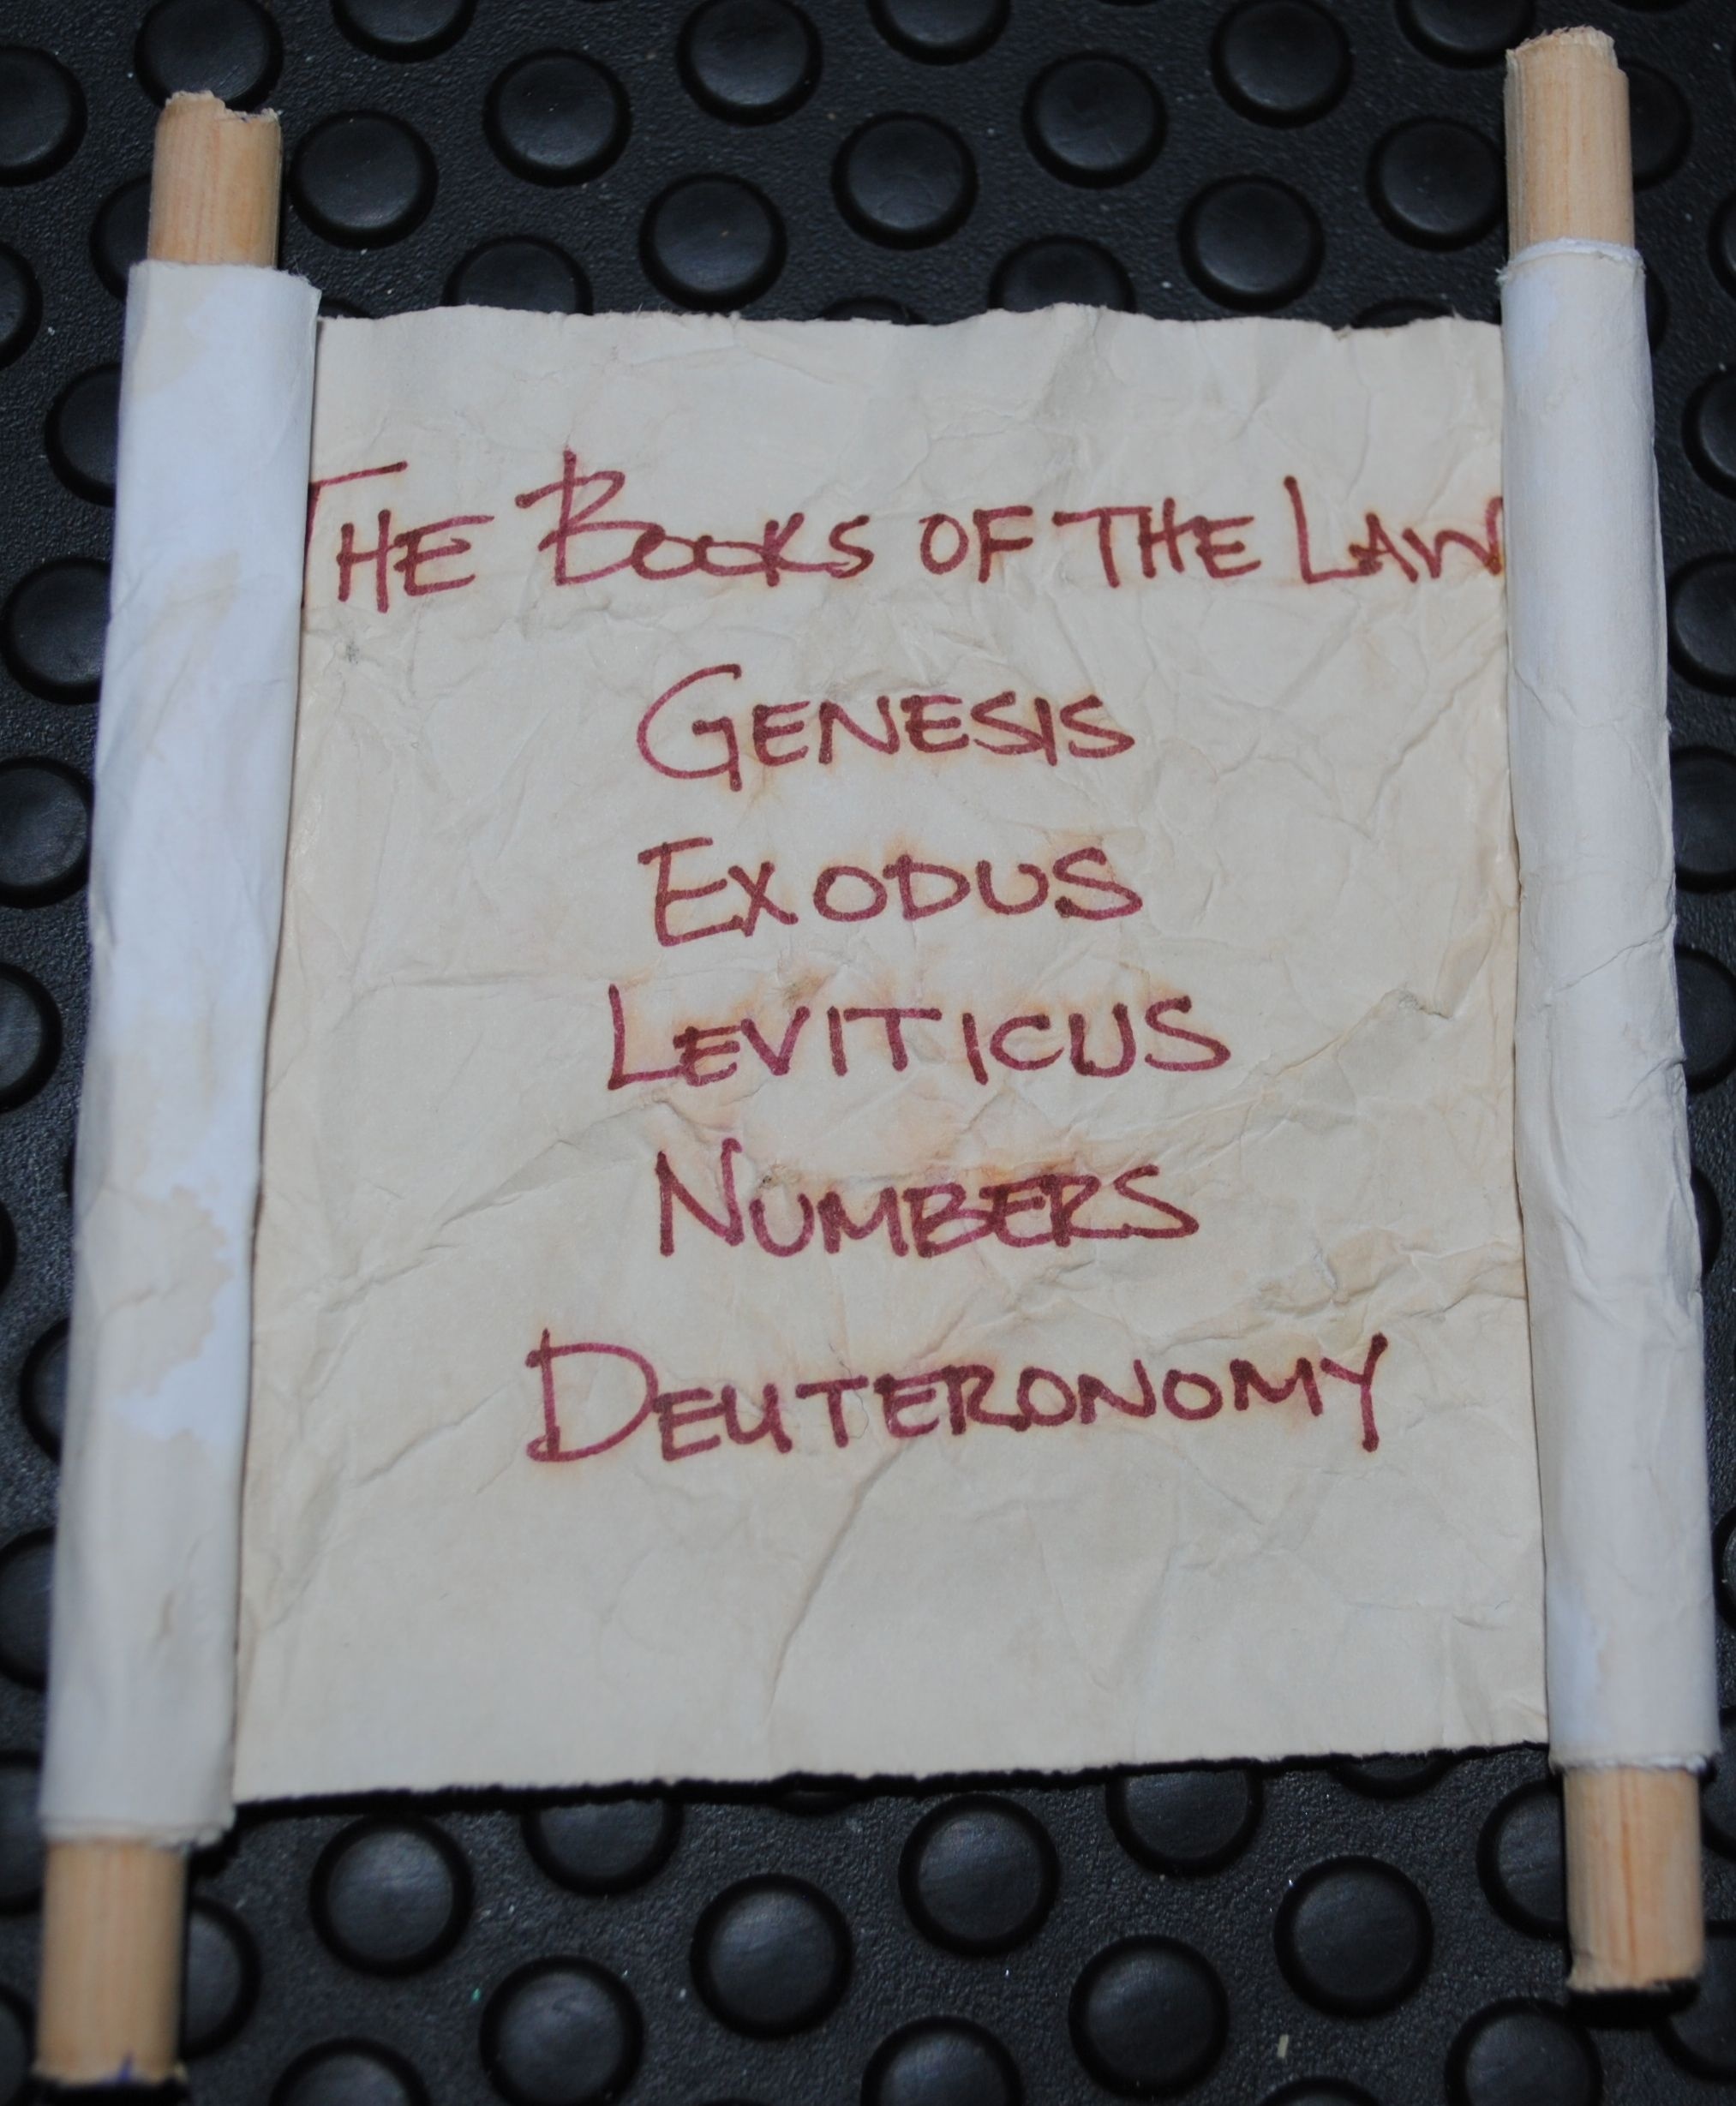 18 Books Of The Law